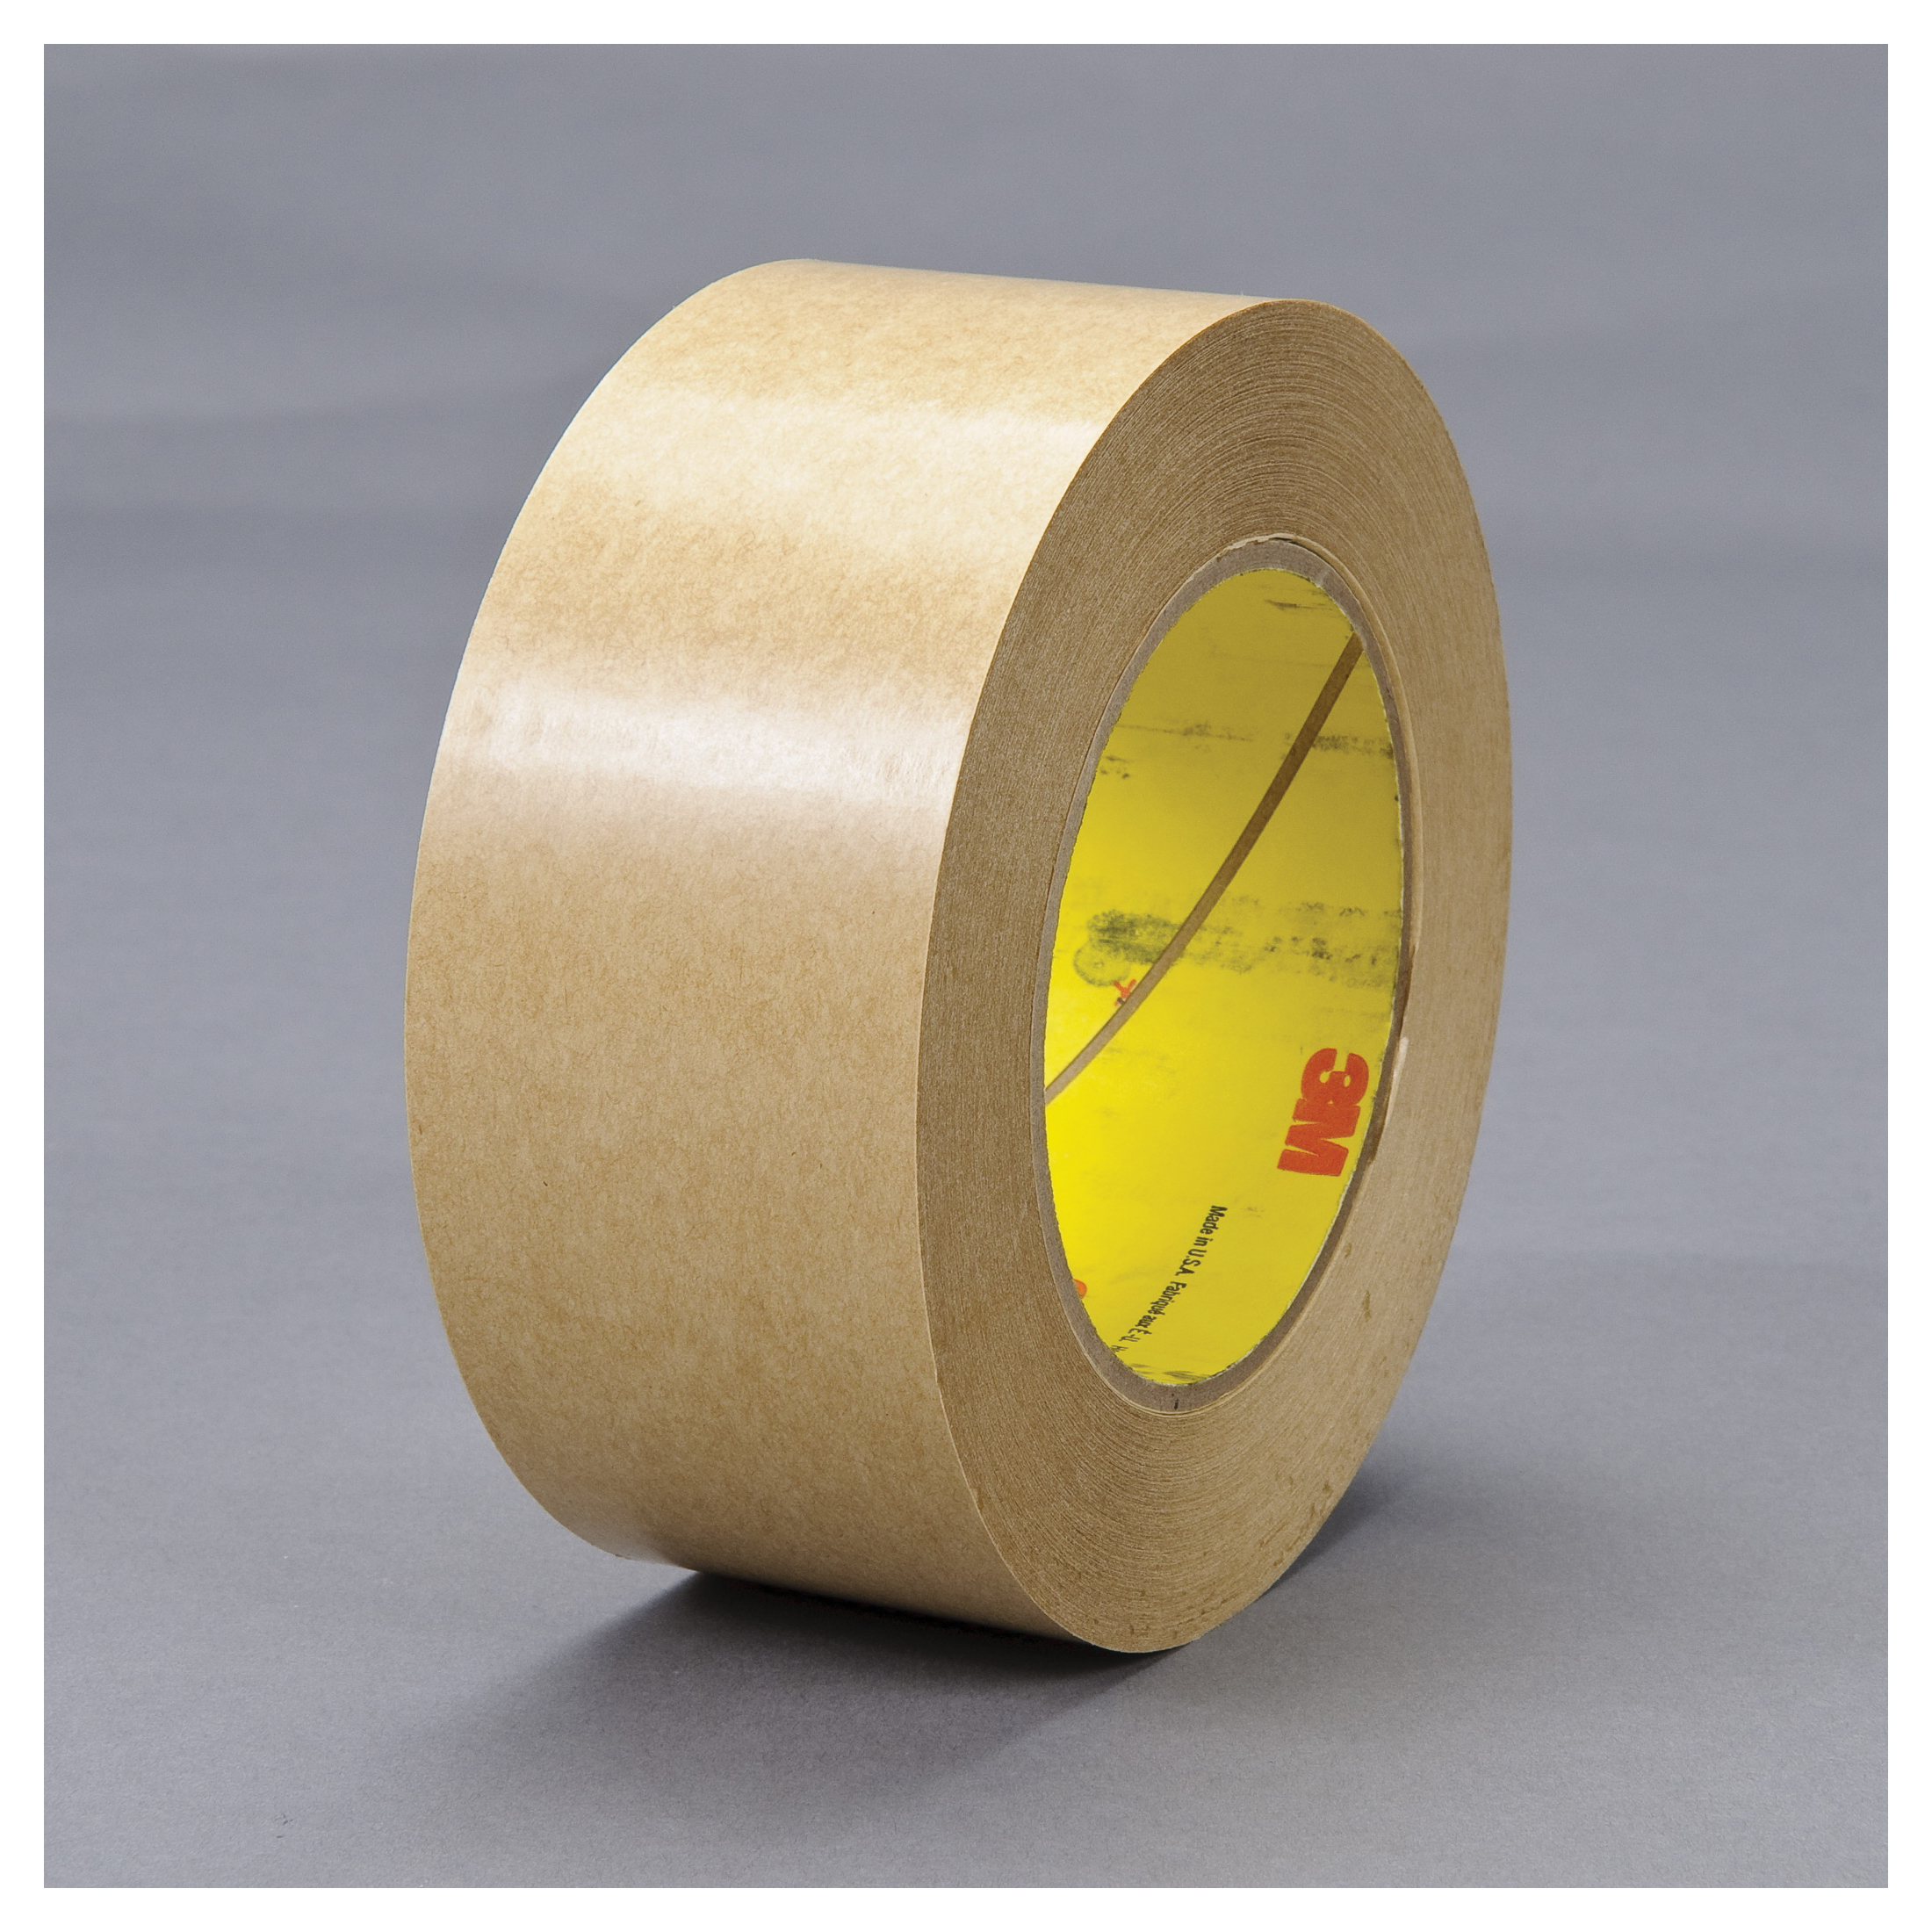 3M™ 021200-04300 Fibered General Purpose Adhesive Transfer Tape, 60 yd L x 2-1/2 in W, 2 mil THK, 2 mil 400 Acrylic Adhesive, Clear